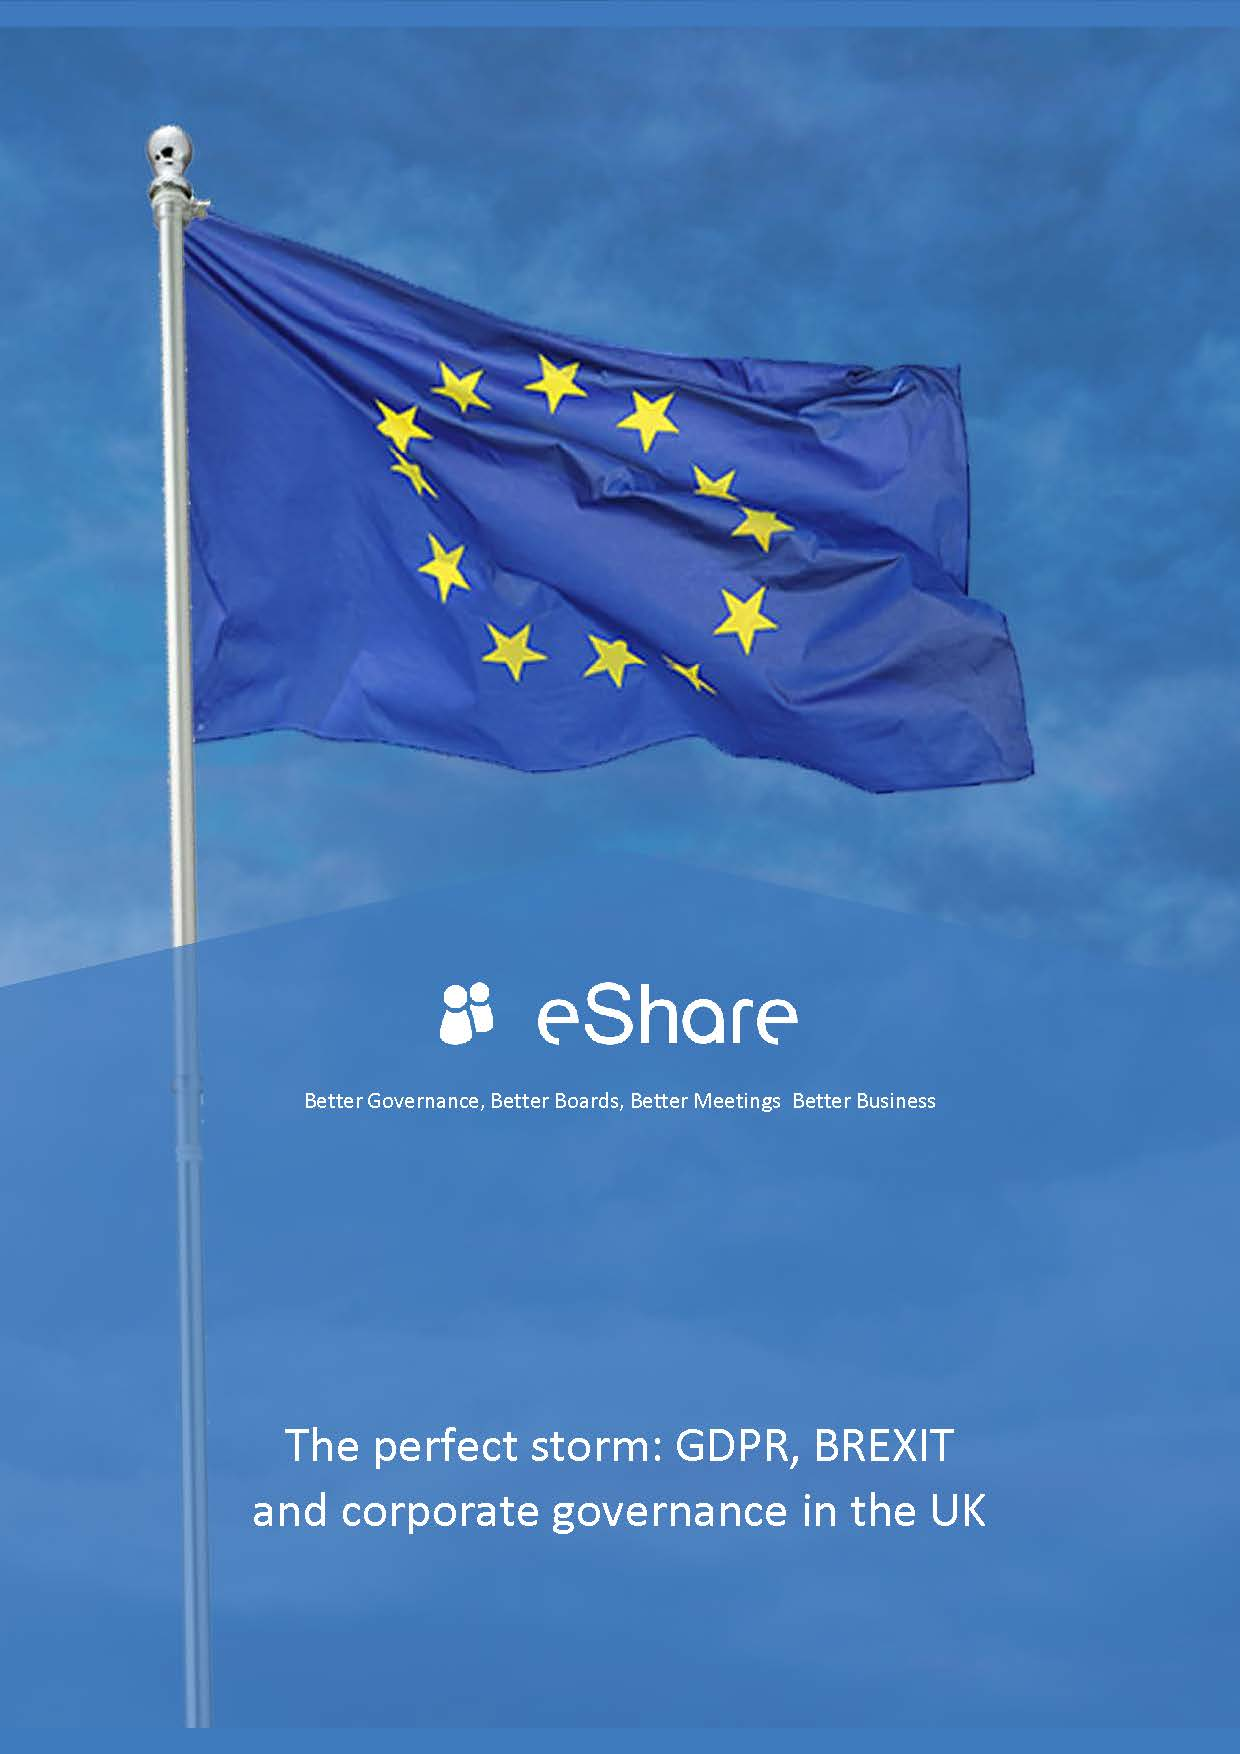 The perfect storm: GDPR, BREXIT and corporate governance in the UK